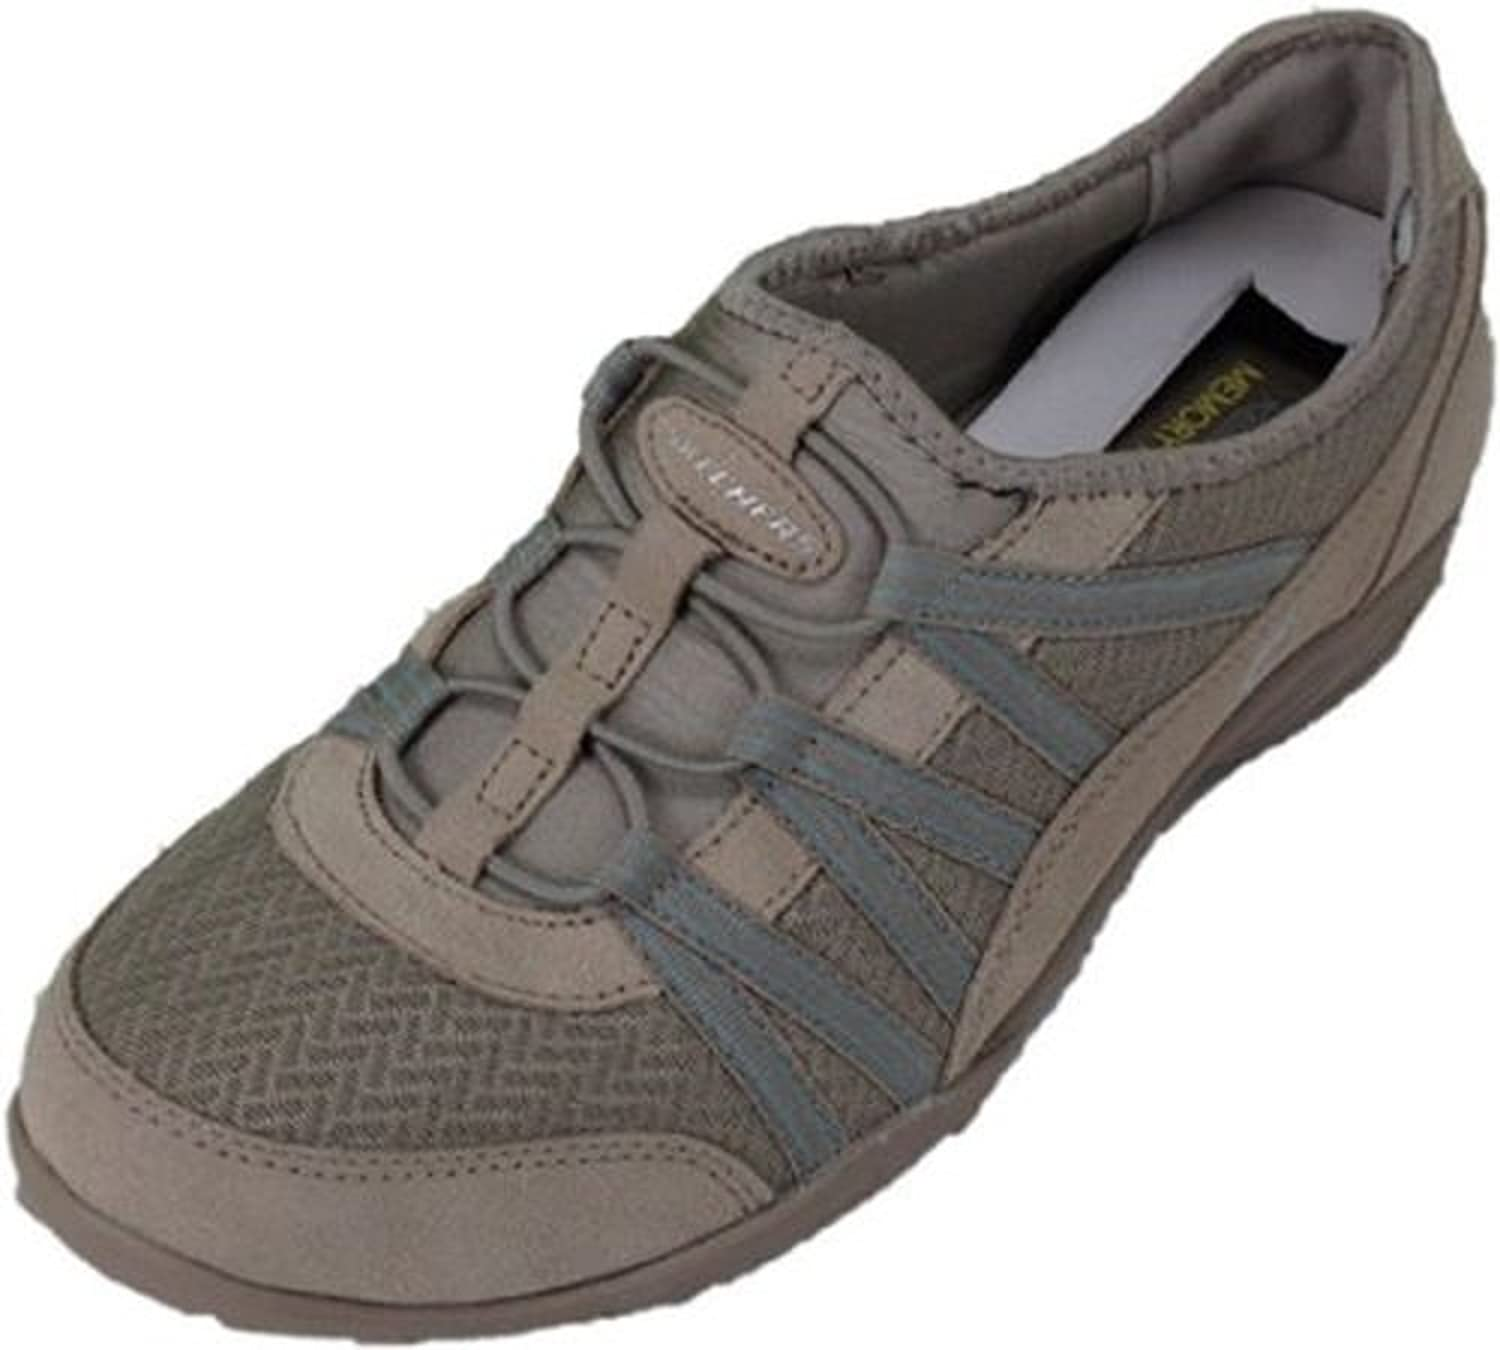 Skechers Ladies Movin Easy Relaxed Fit with Memory Foam Shoes TAUPE 7.5